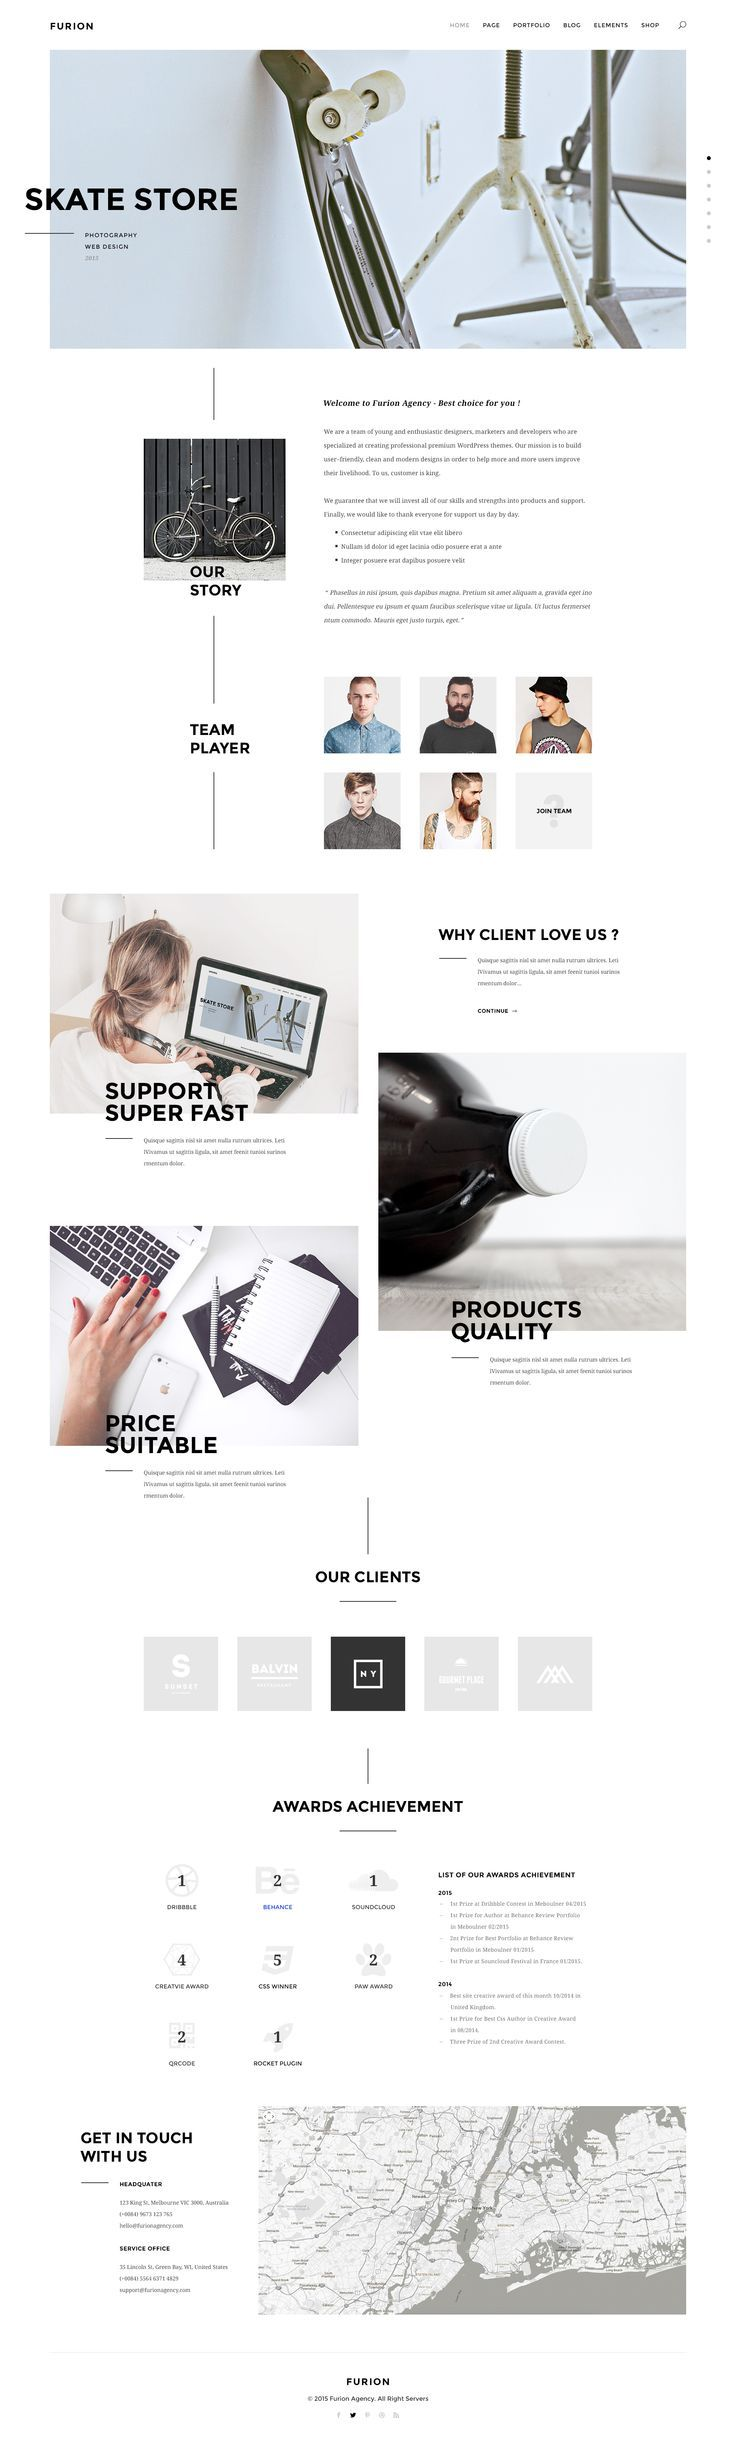 197 best Web Design Inspo images on Pinterest | Page layout, Web ...